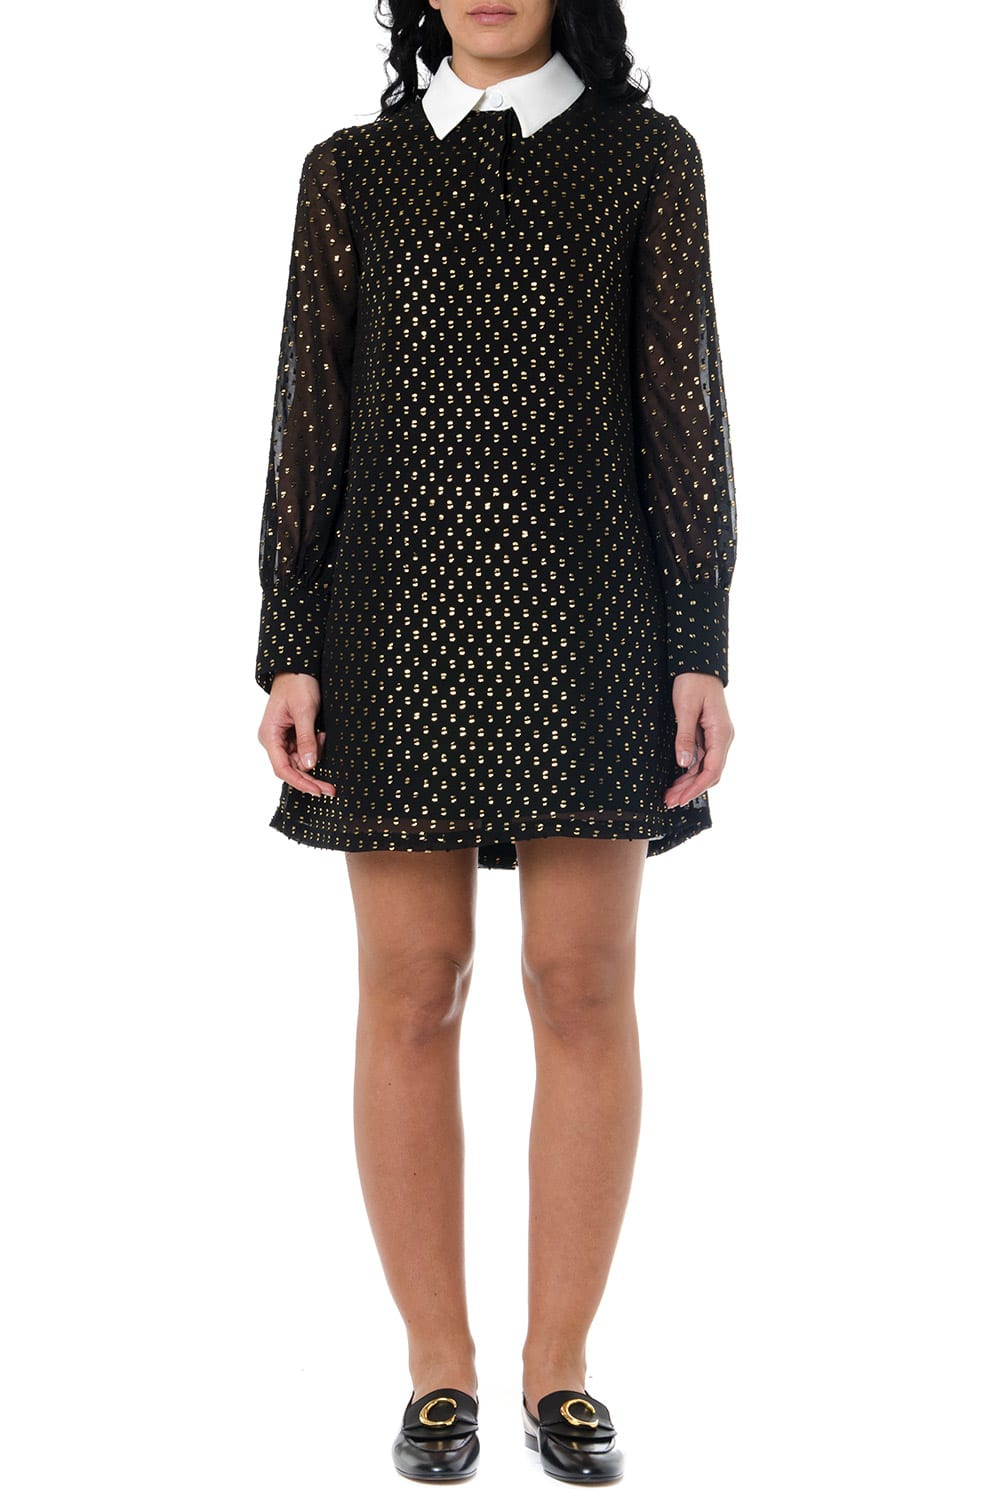 Buy Frankie Morello Black Glittered Shirt Dress online, shop Frankie Morello with free shipping